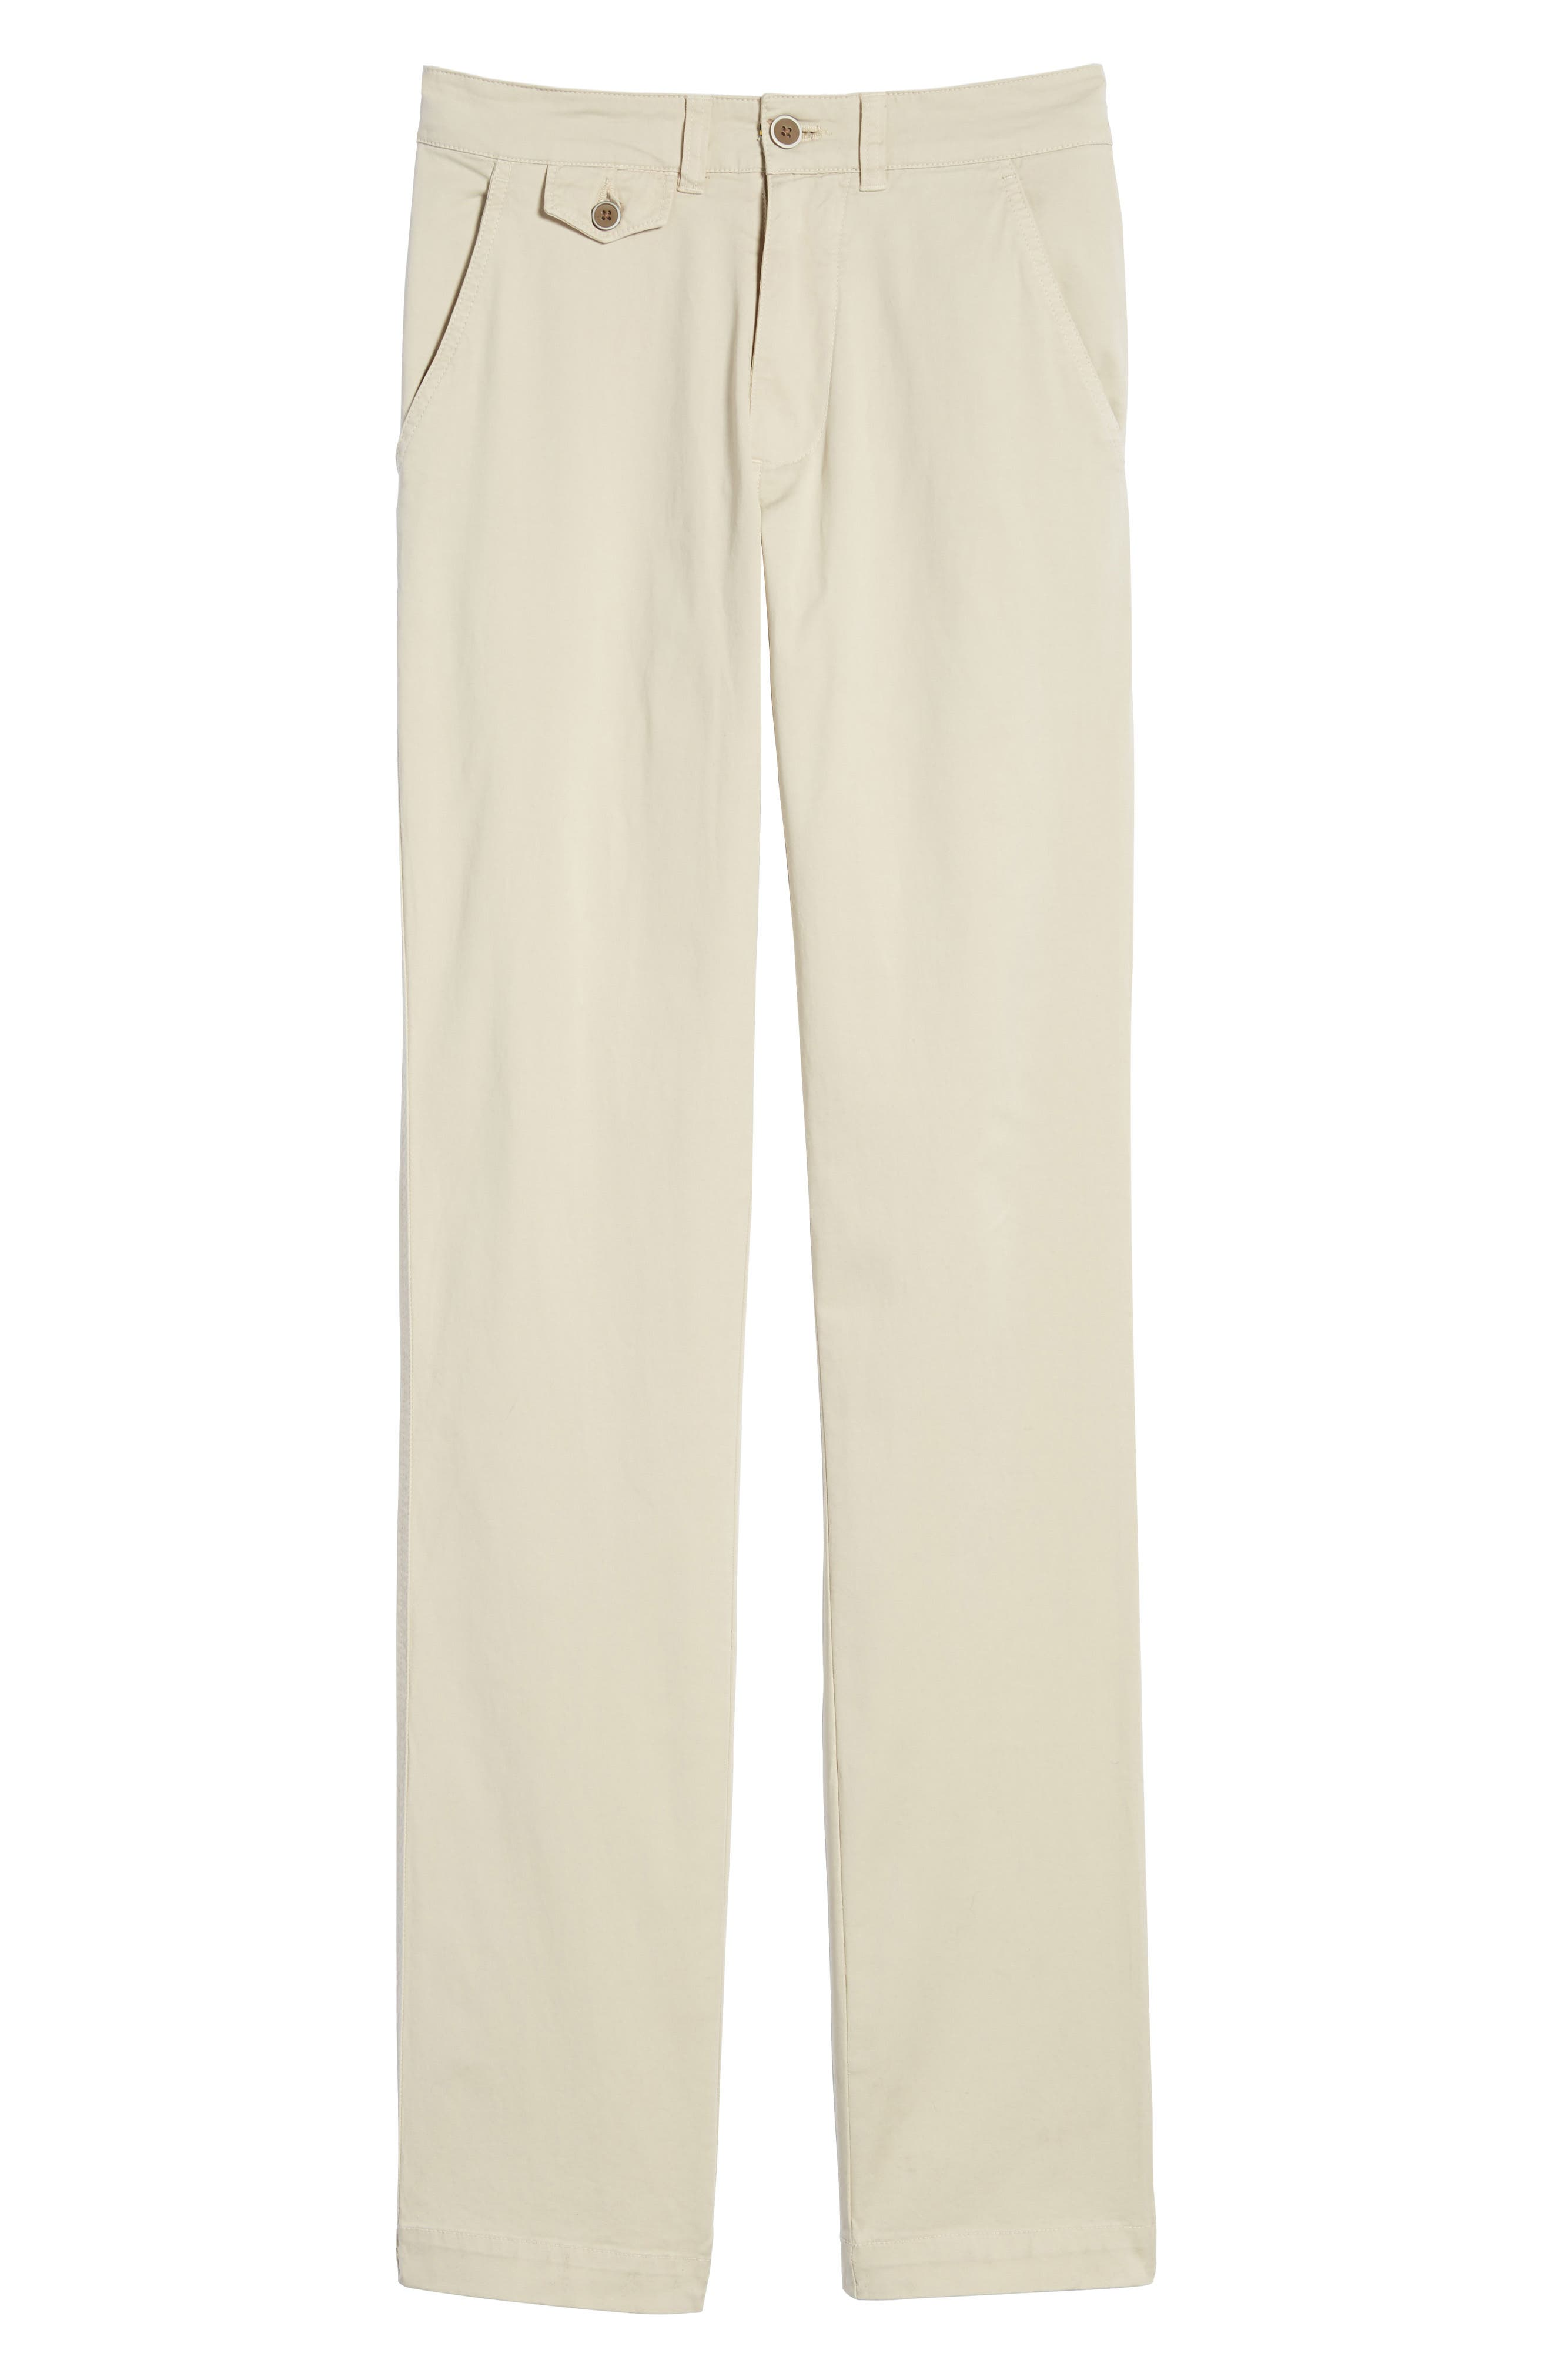 Sunny Modern Fit Stretch Twill Chinos,                             Alternate thumbnail 6, color,                             STONE